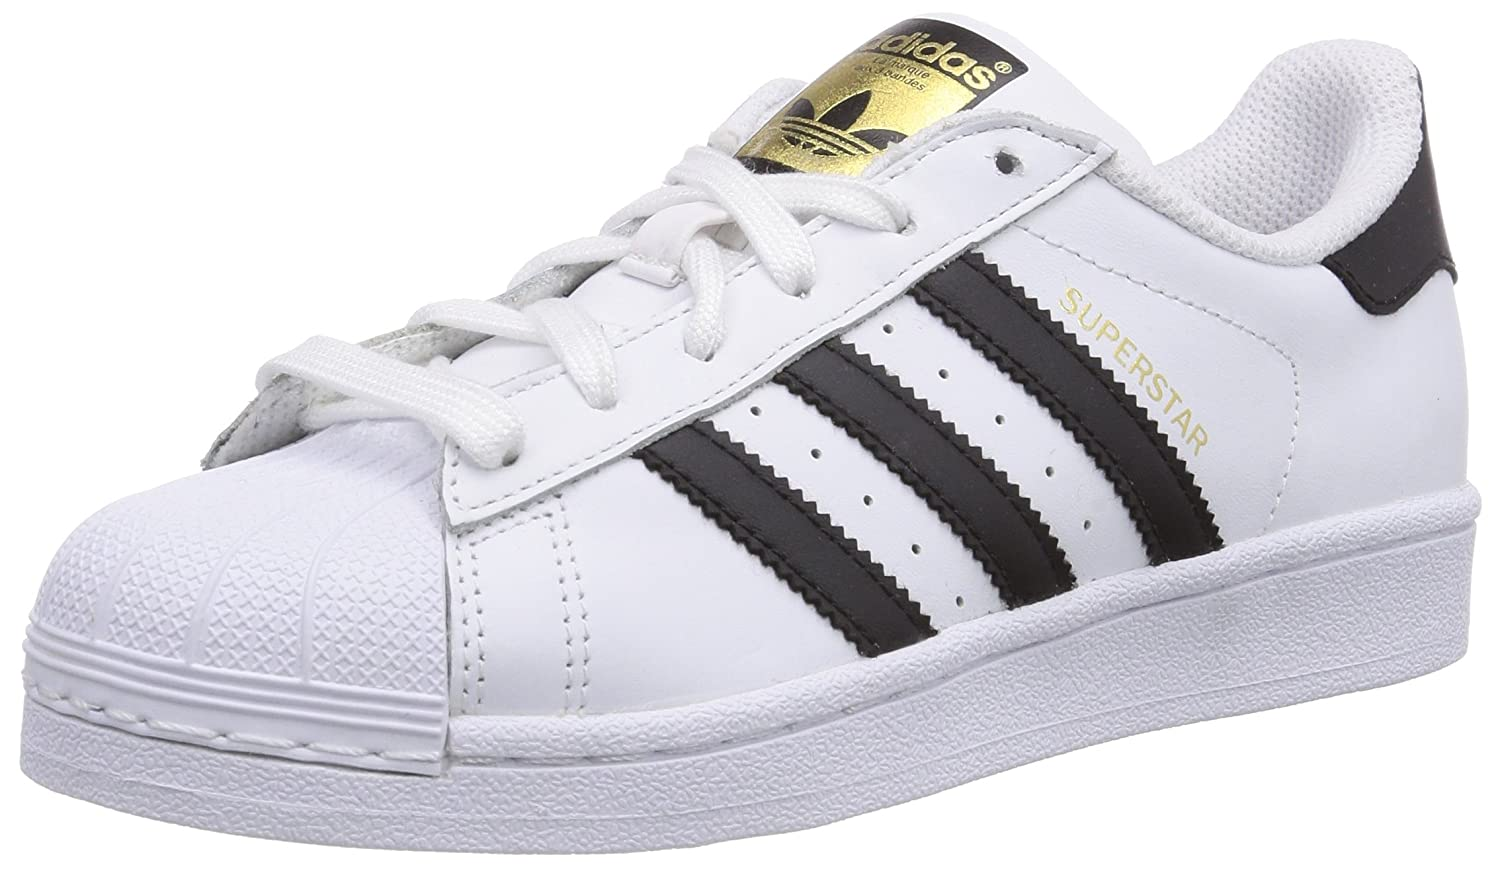 SCARPA ADIDAS SUPERSTAR MODA UOMO FASHION SNEAKERS C77124